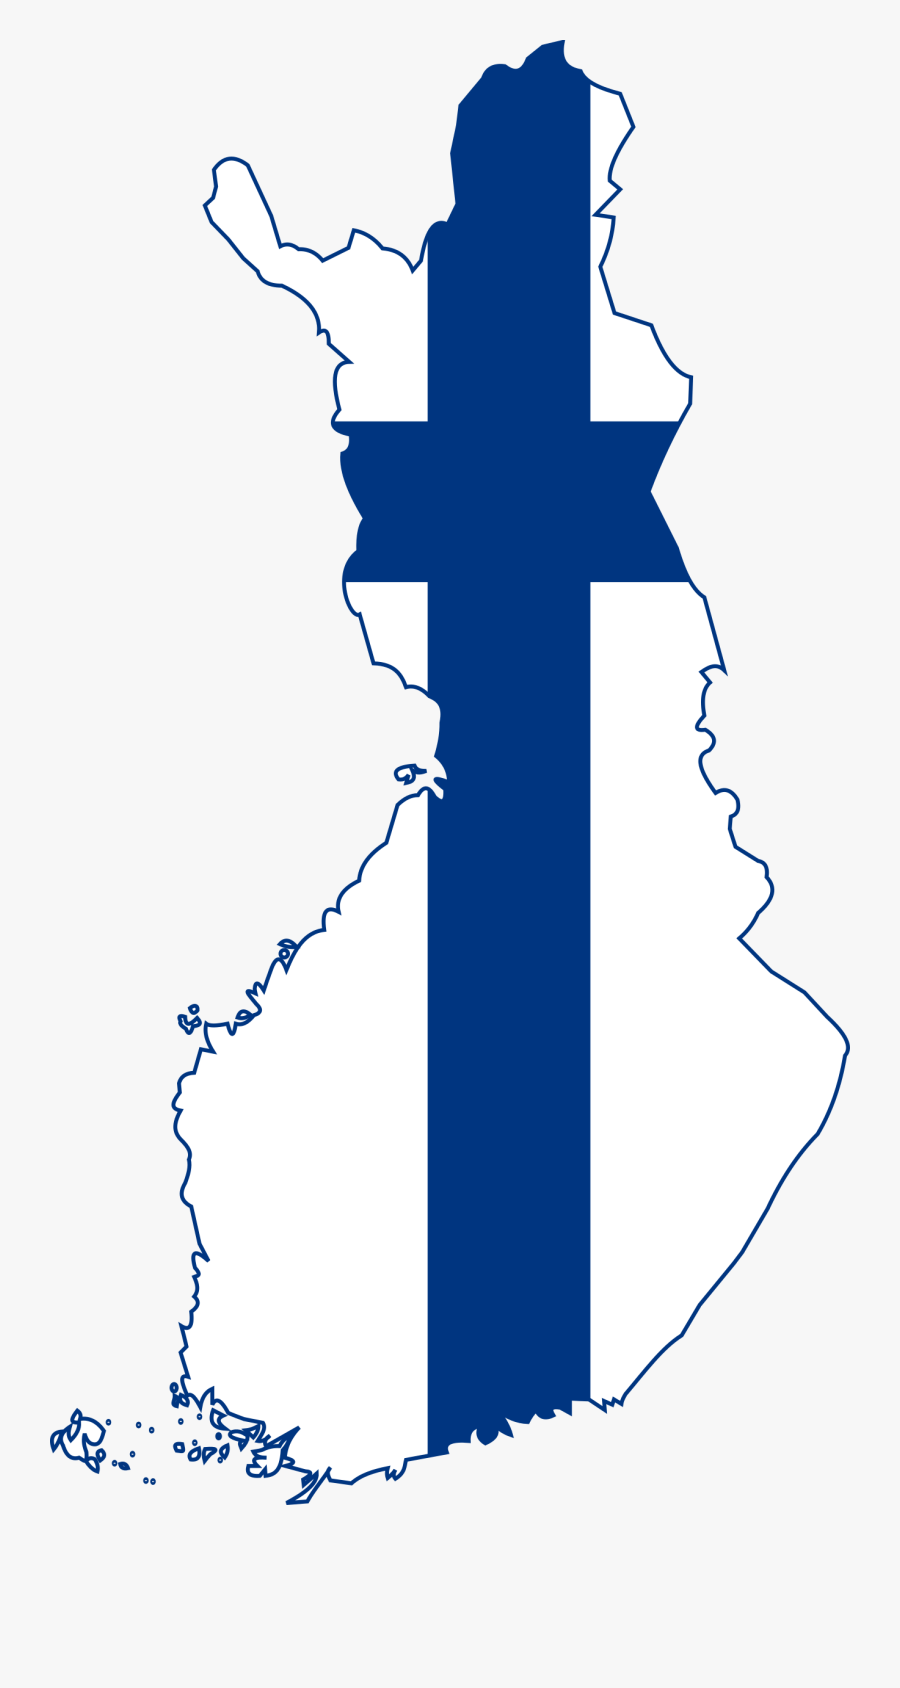 Clipart - Finland Map With Flag, Transparent Clipart